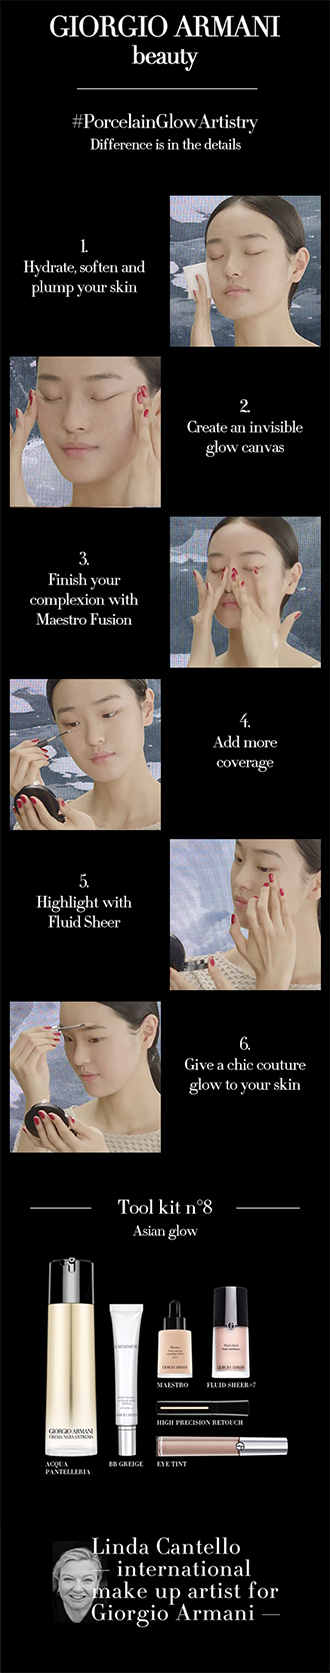 Armani Artistry Tutorial 8/15: Nude. #PorcelainGlowArtistryThe secret to a Porcelain Glow is unveiled in this tutorial with Linda Cantello, International make up artist for Giorgio Armani.